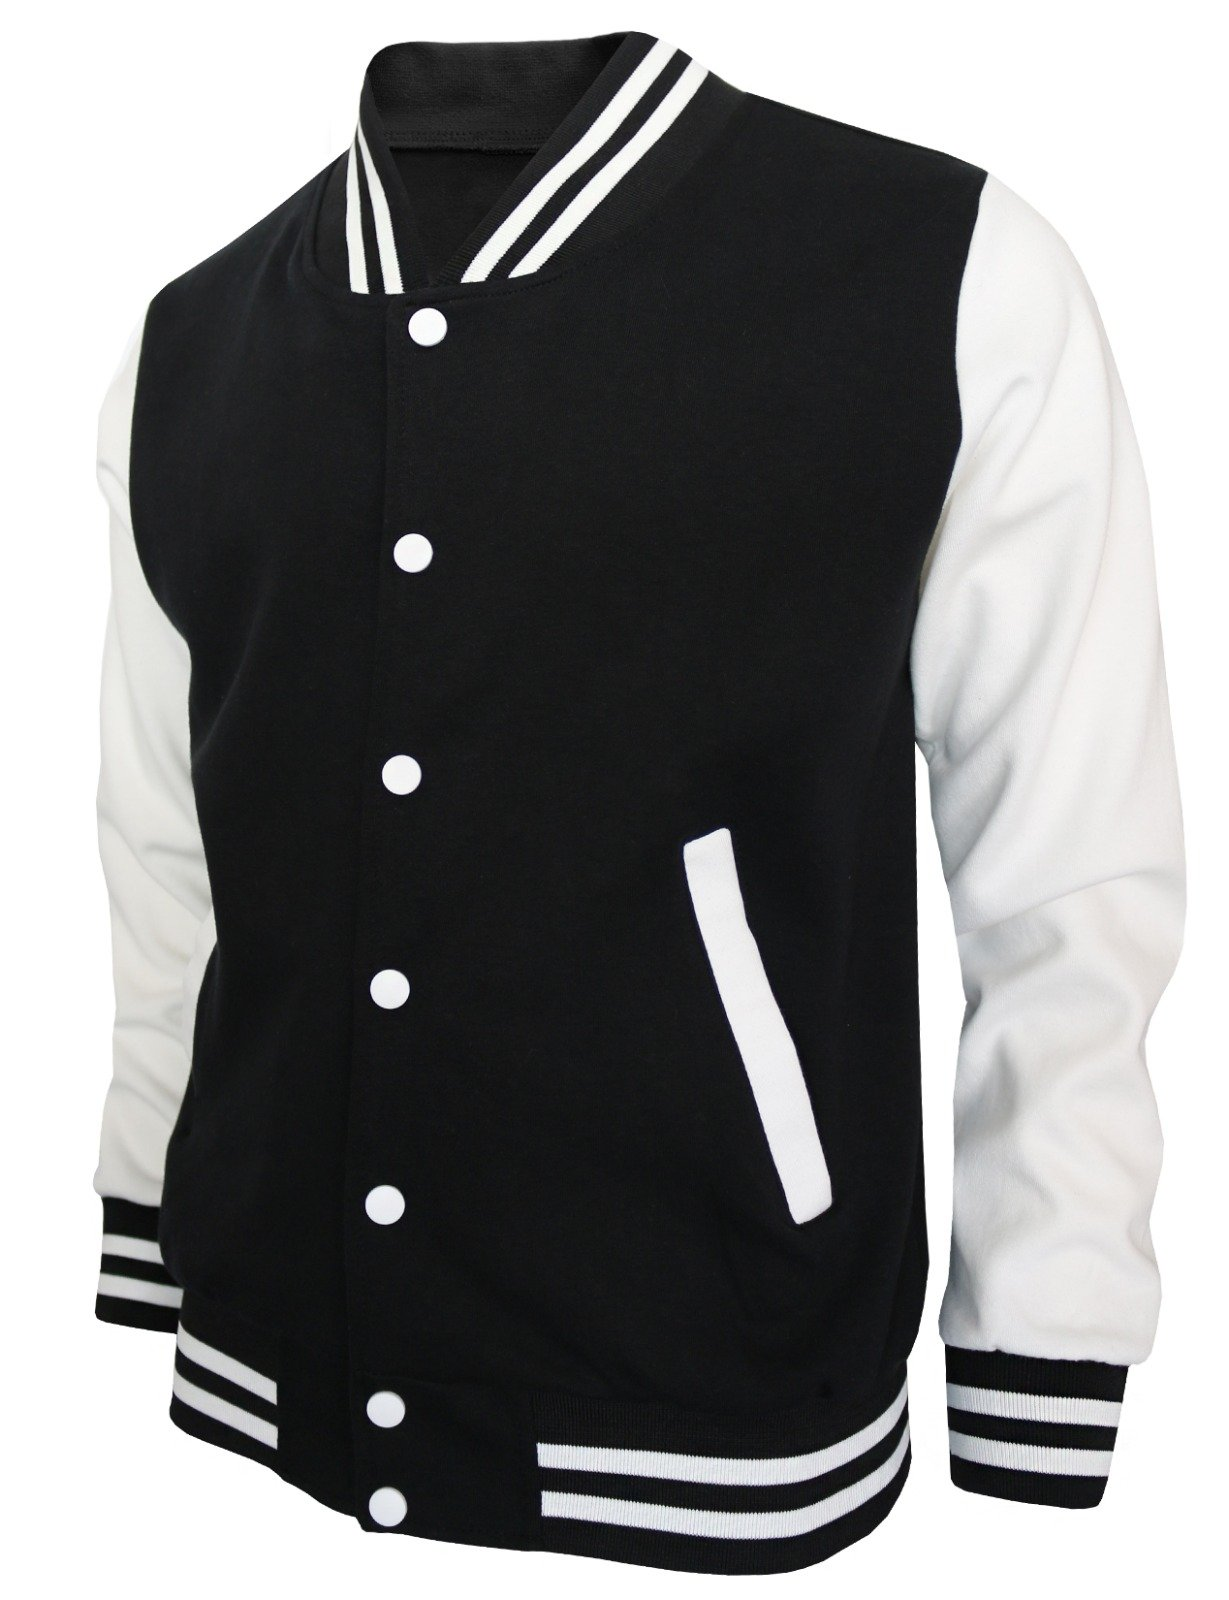 BCPOLO Baseball Jacket Varsity Baseball Cotton Jacket Letterman jacket 8 Colors-black L US, Asian XL by BCPOLO